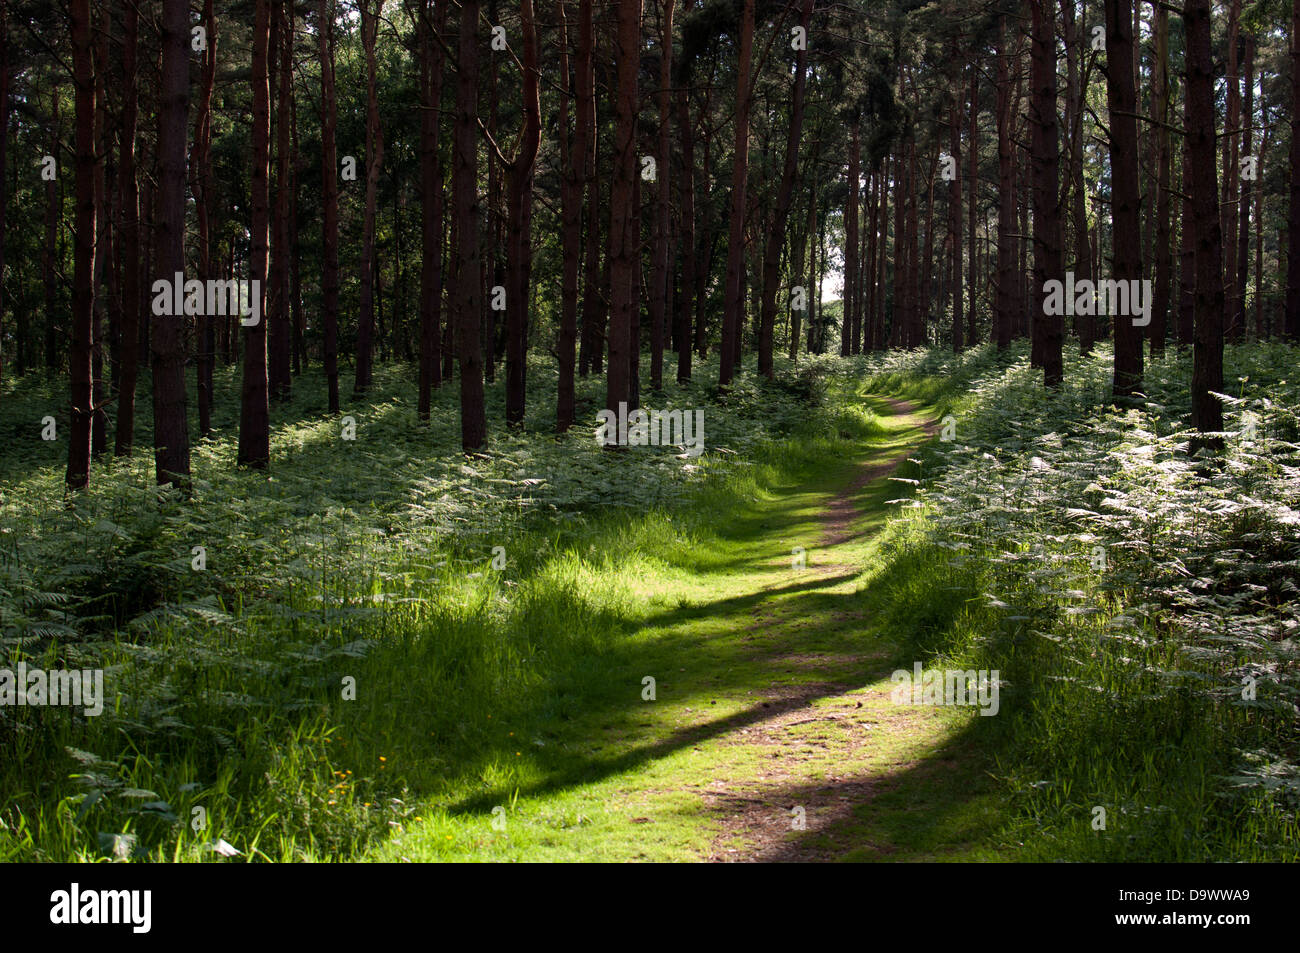 Oversley Wood, Warwickshire, UK - Stock Image